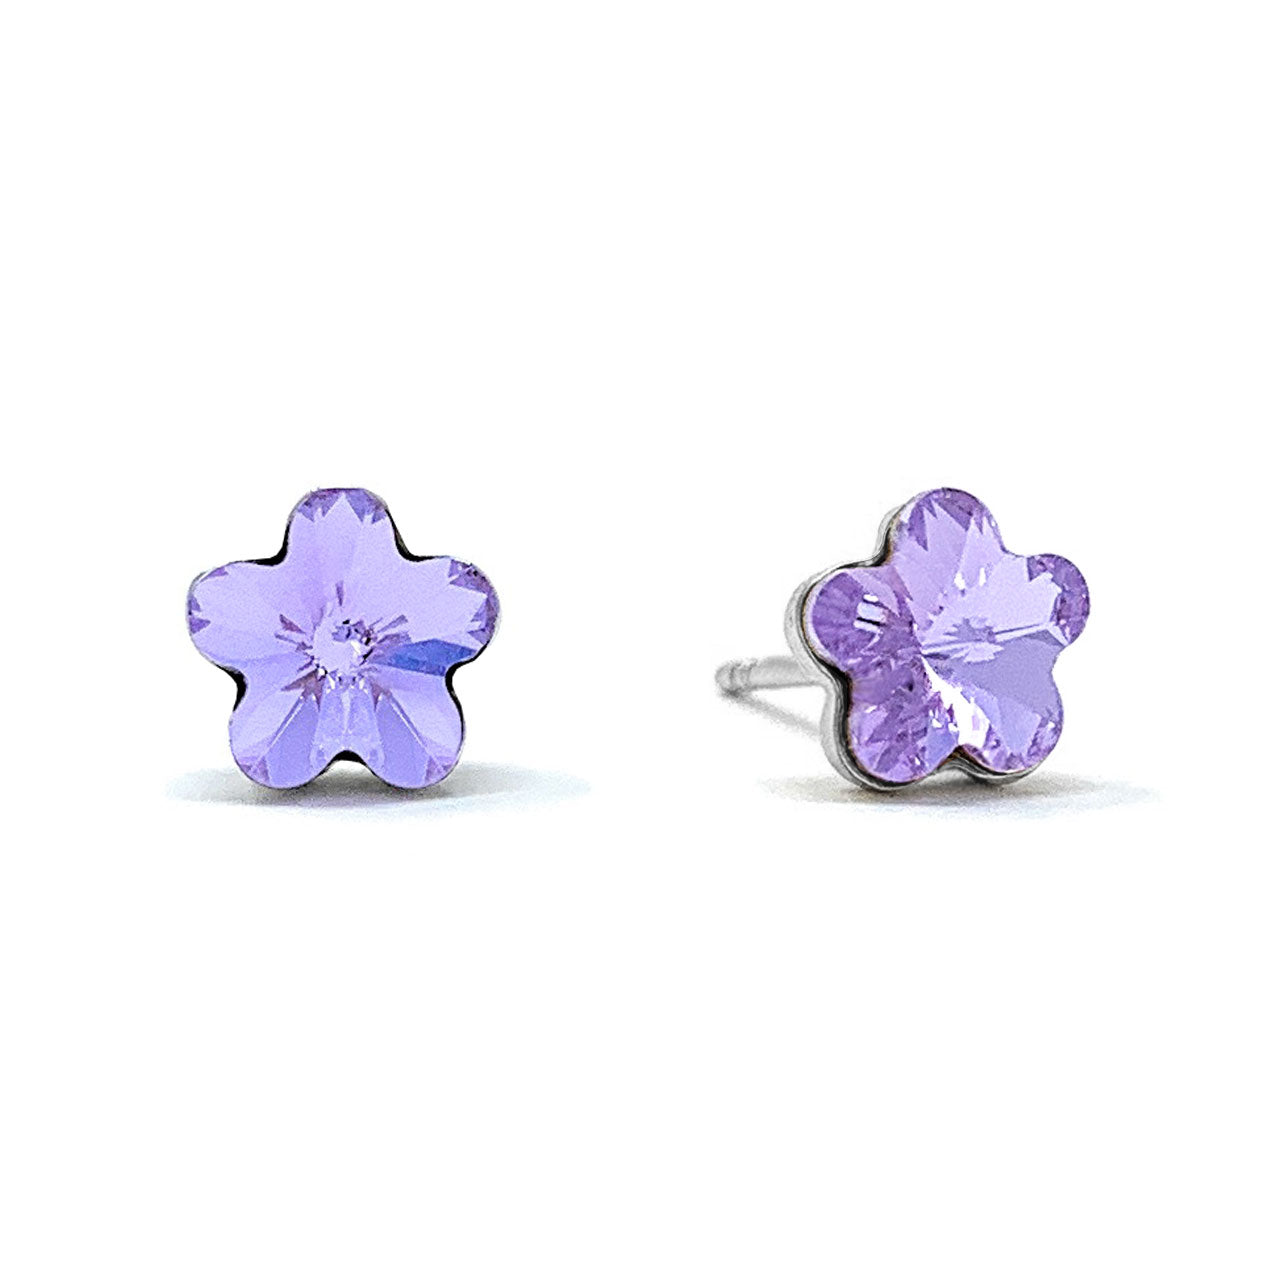 Anna Small Stud Earrings With Purple Violet Flower Crystals From Swaro Ed Heart